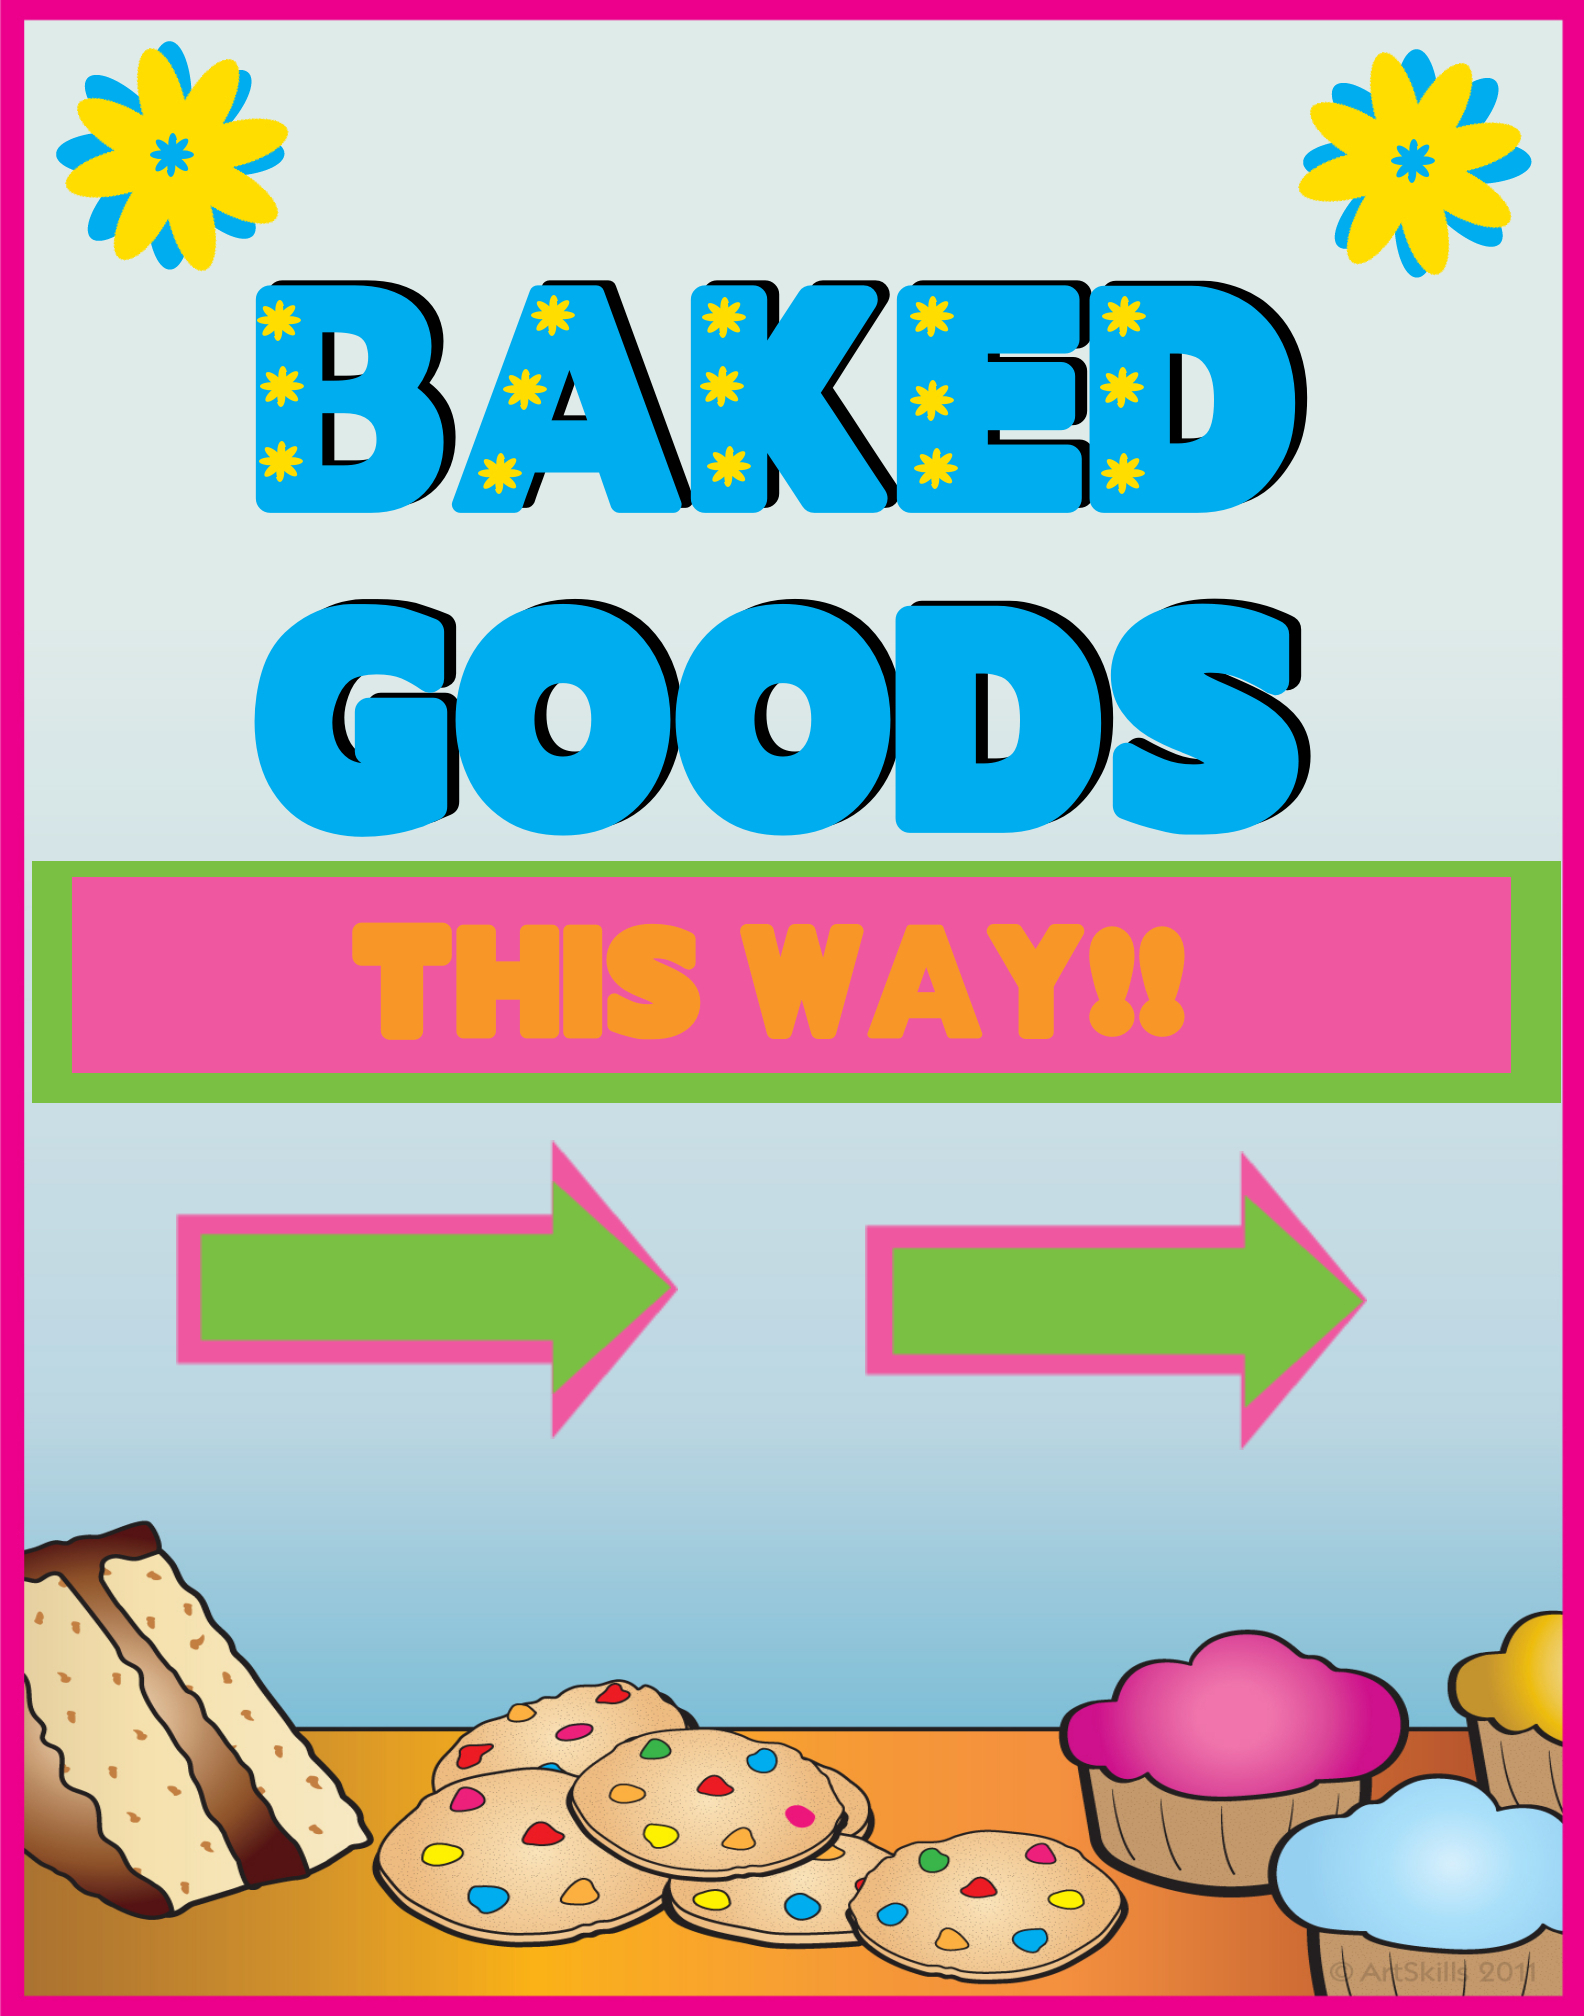 printable bake flyers cliparts co online poster gallery poster project ideas poster making pin printable bake flyers pic 13 cake